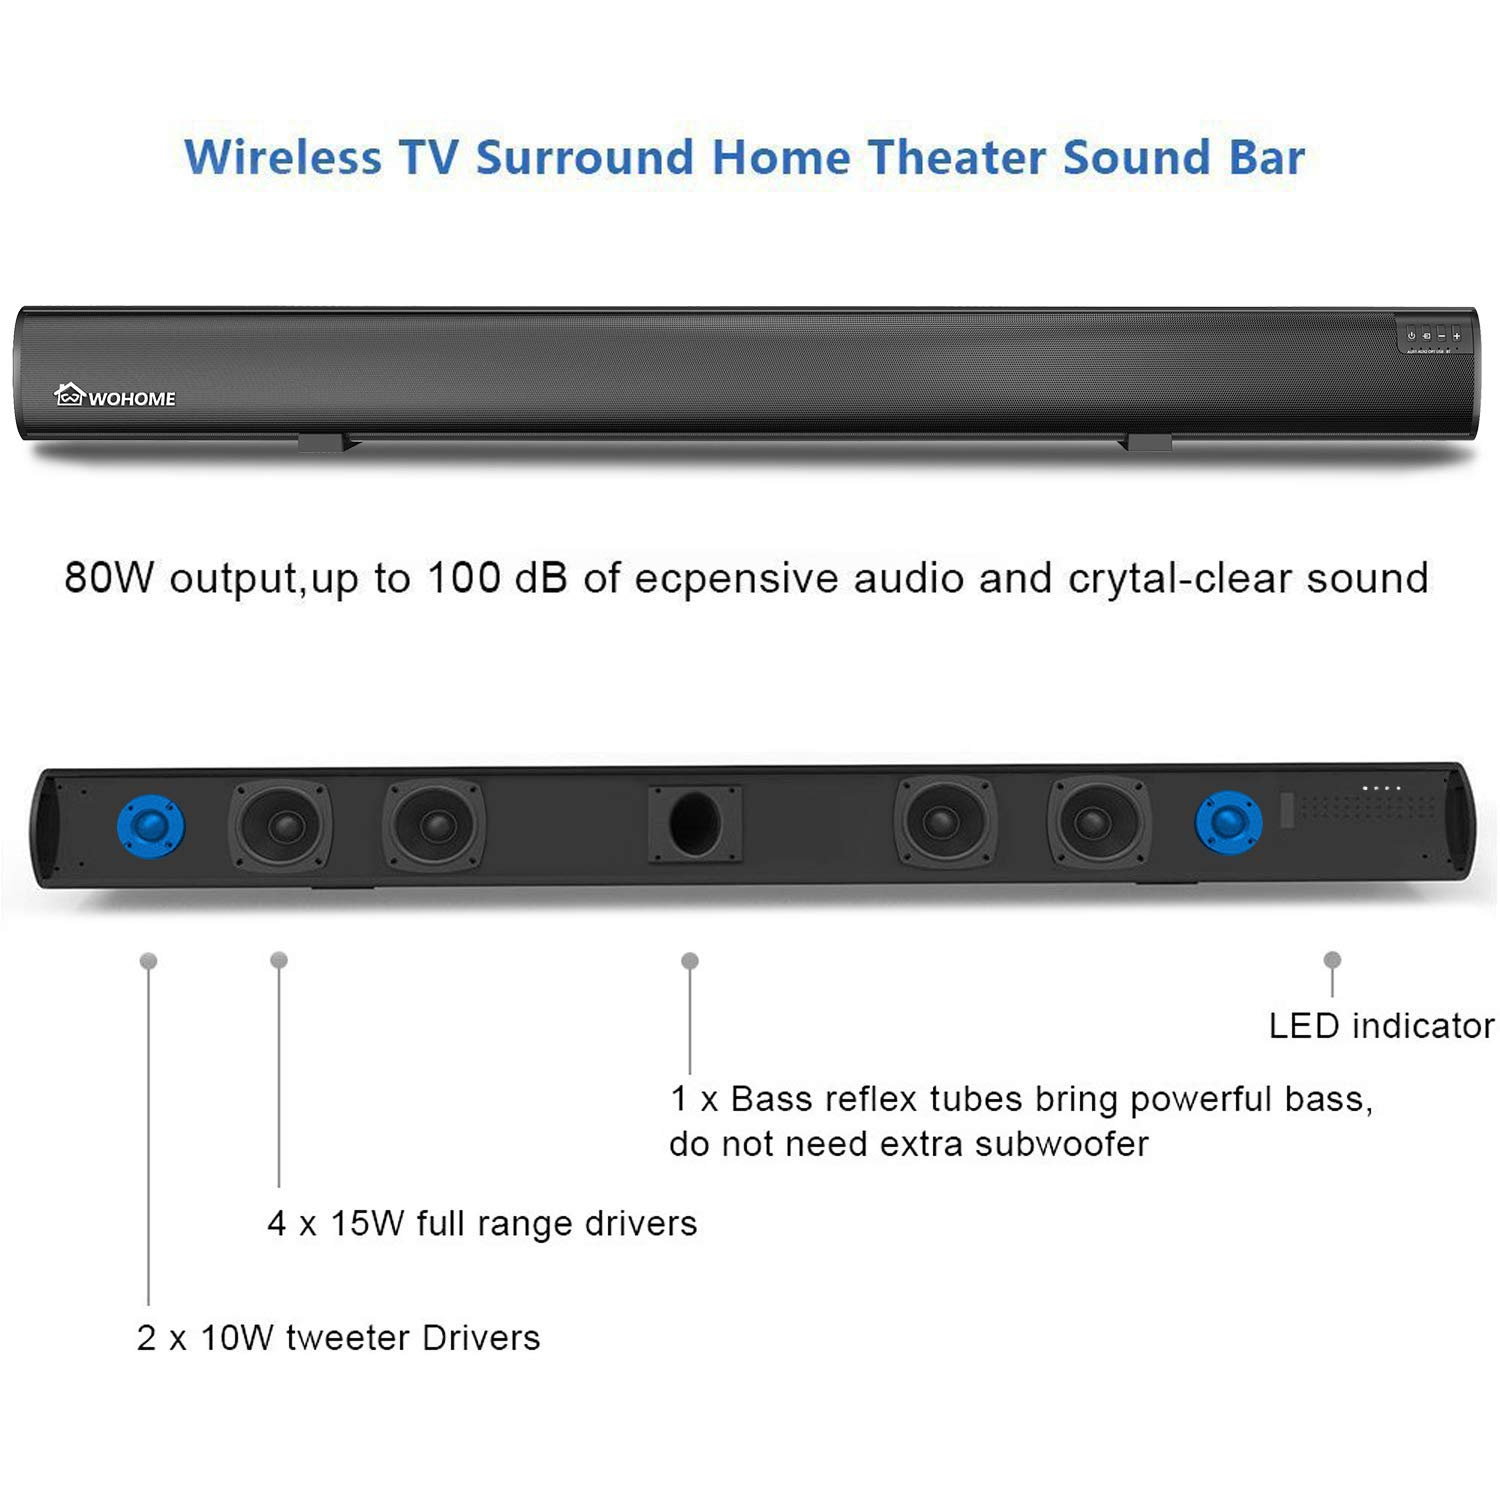 Soundbar Wohome TV Sound Bar Wireless Bluetooth Home Theater Surround  Speaker System with Remote Control 34 Inch 6 Drivers 80W 100 dB 2019  Updated